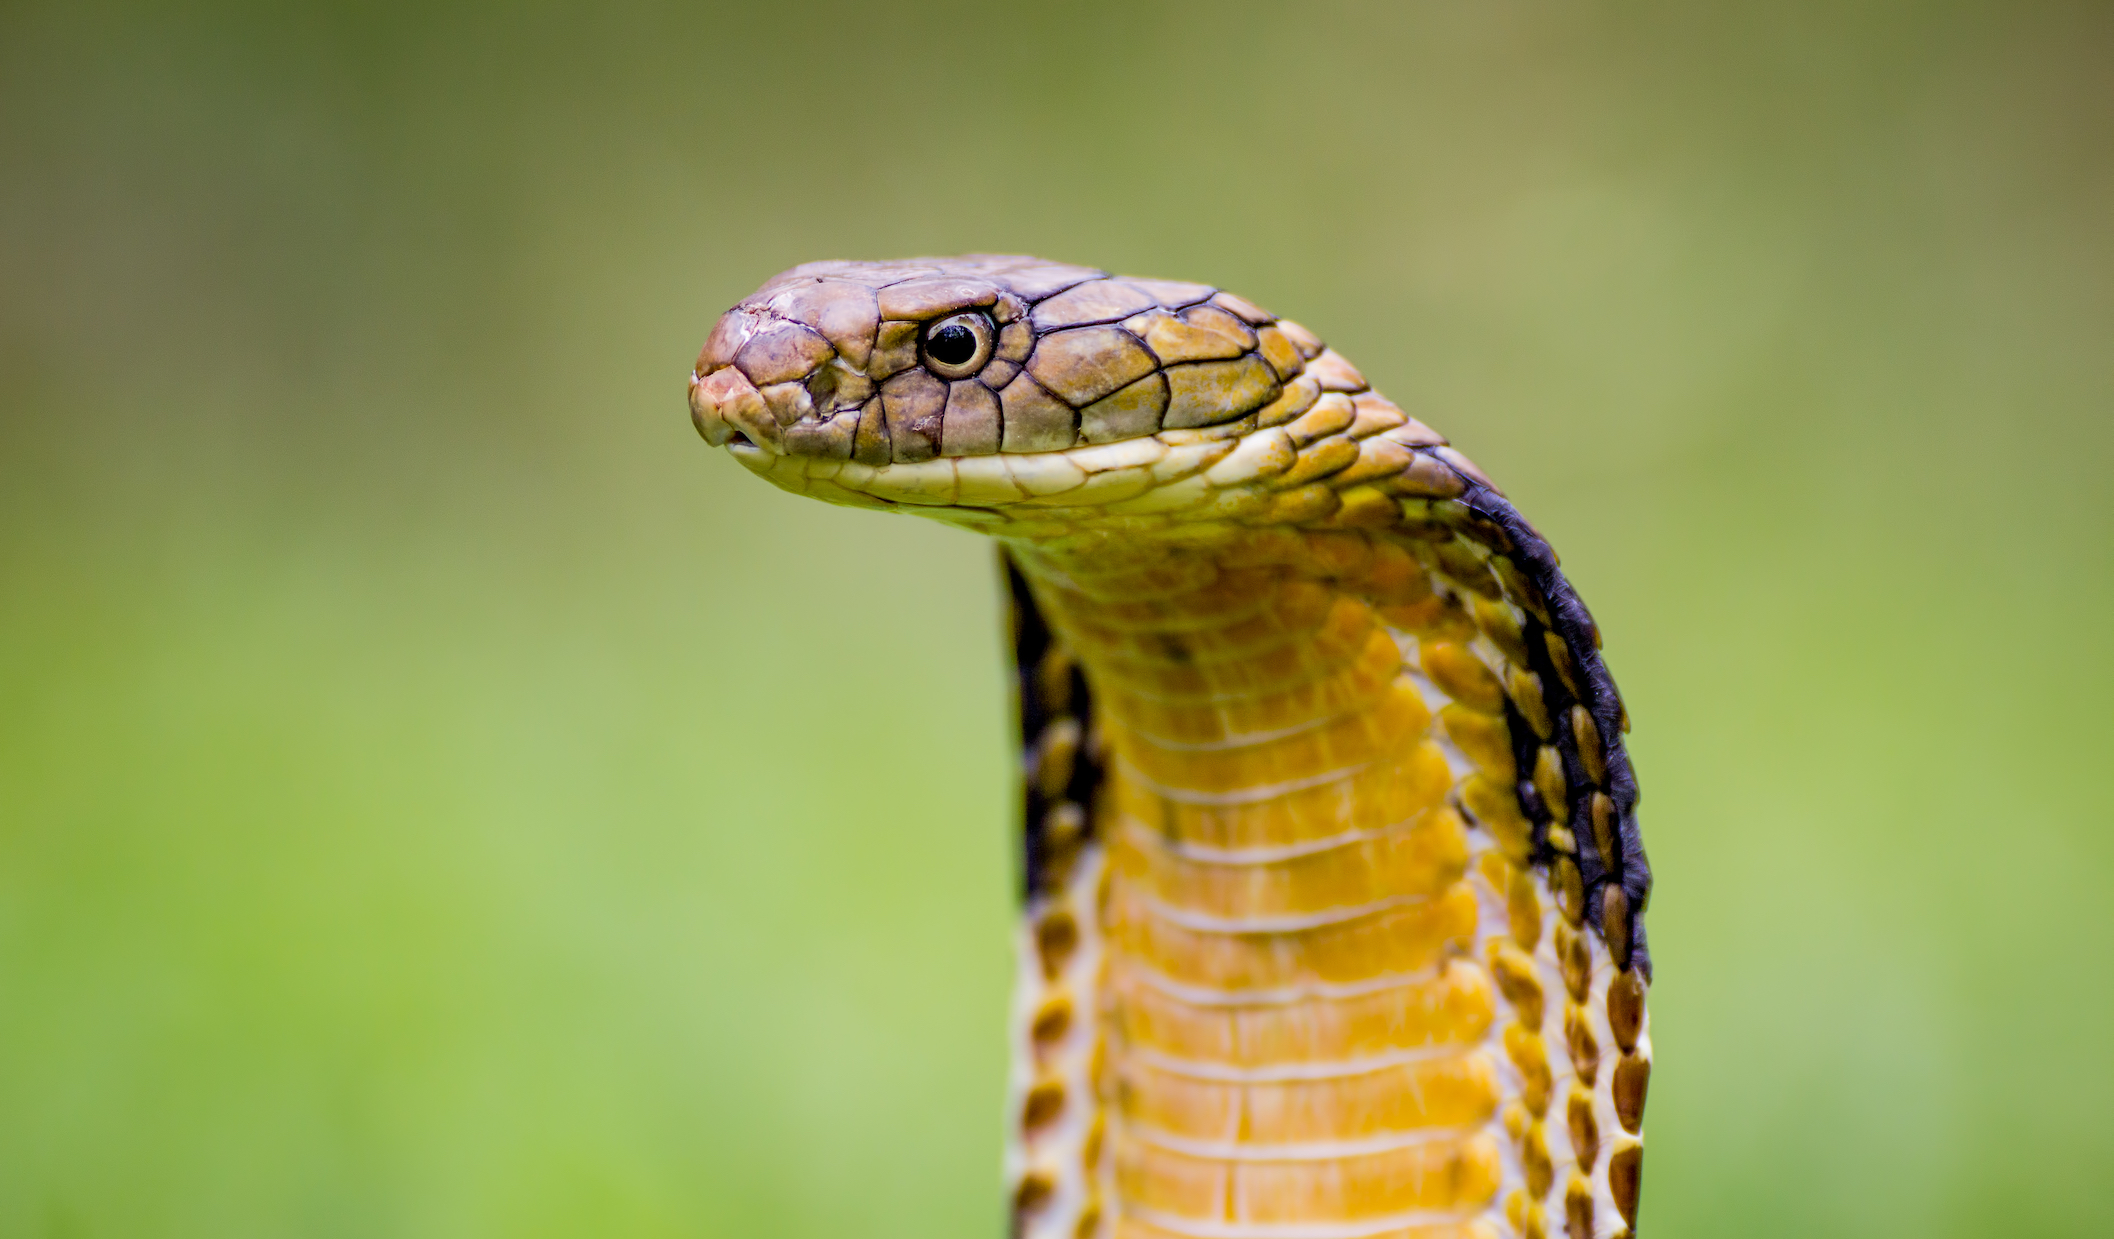 93 million people in the world have a greater risk of dying from snake bites because they can't get proper care.